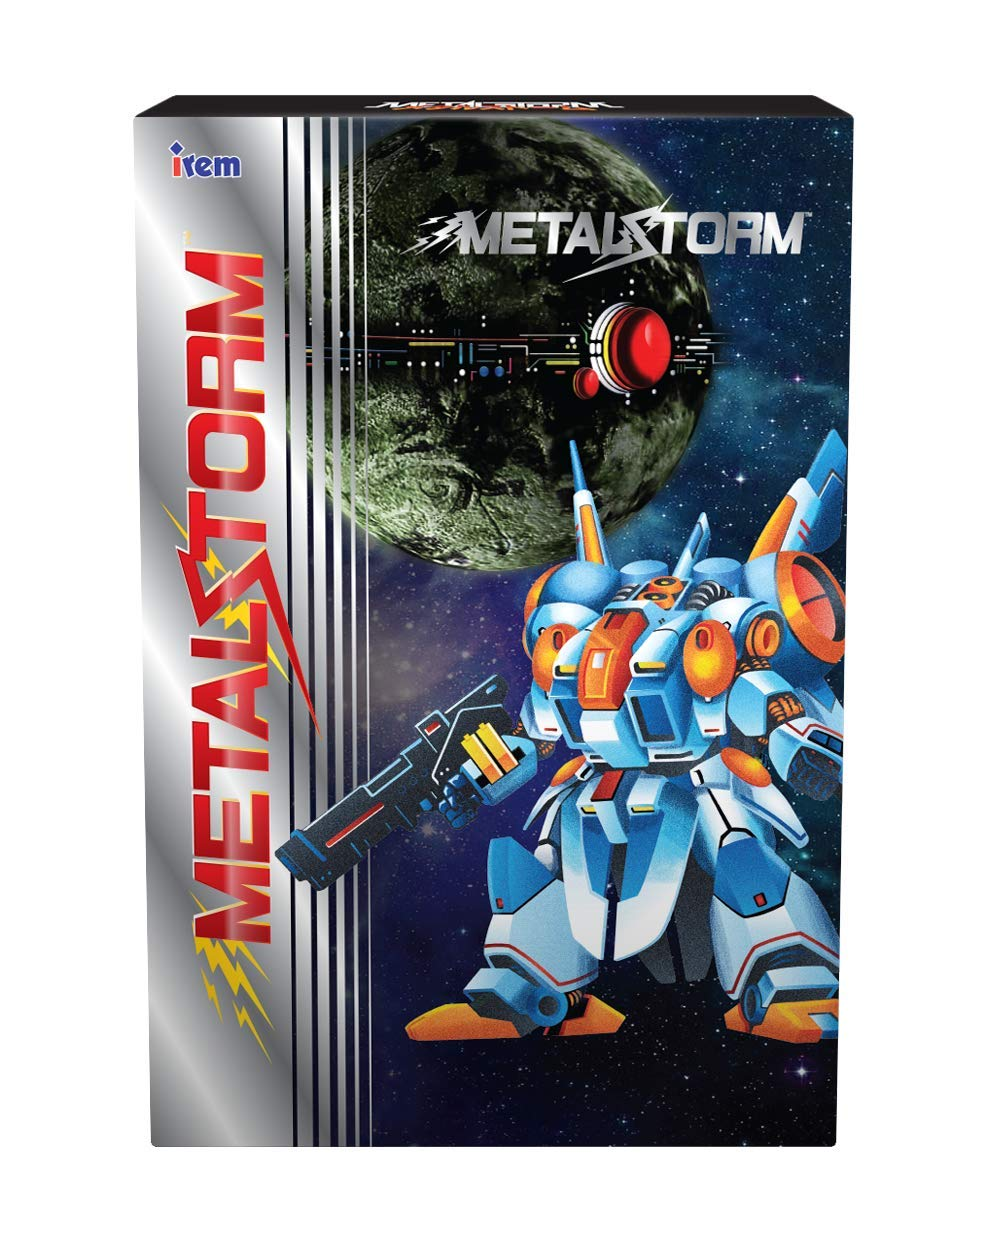 Metal Storm Standard Edition for NES Electroni High In stock material 8-Bit Nintendo